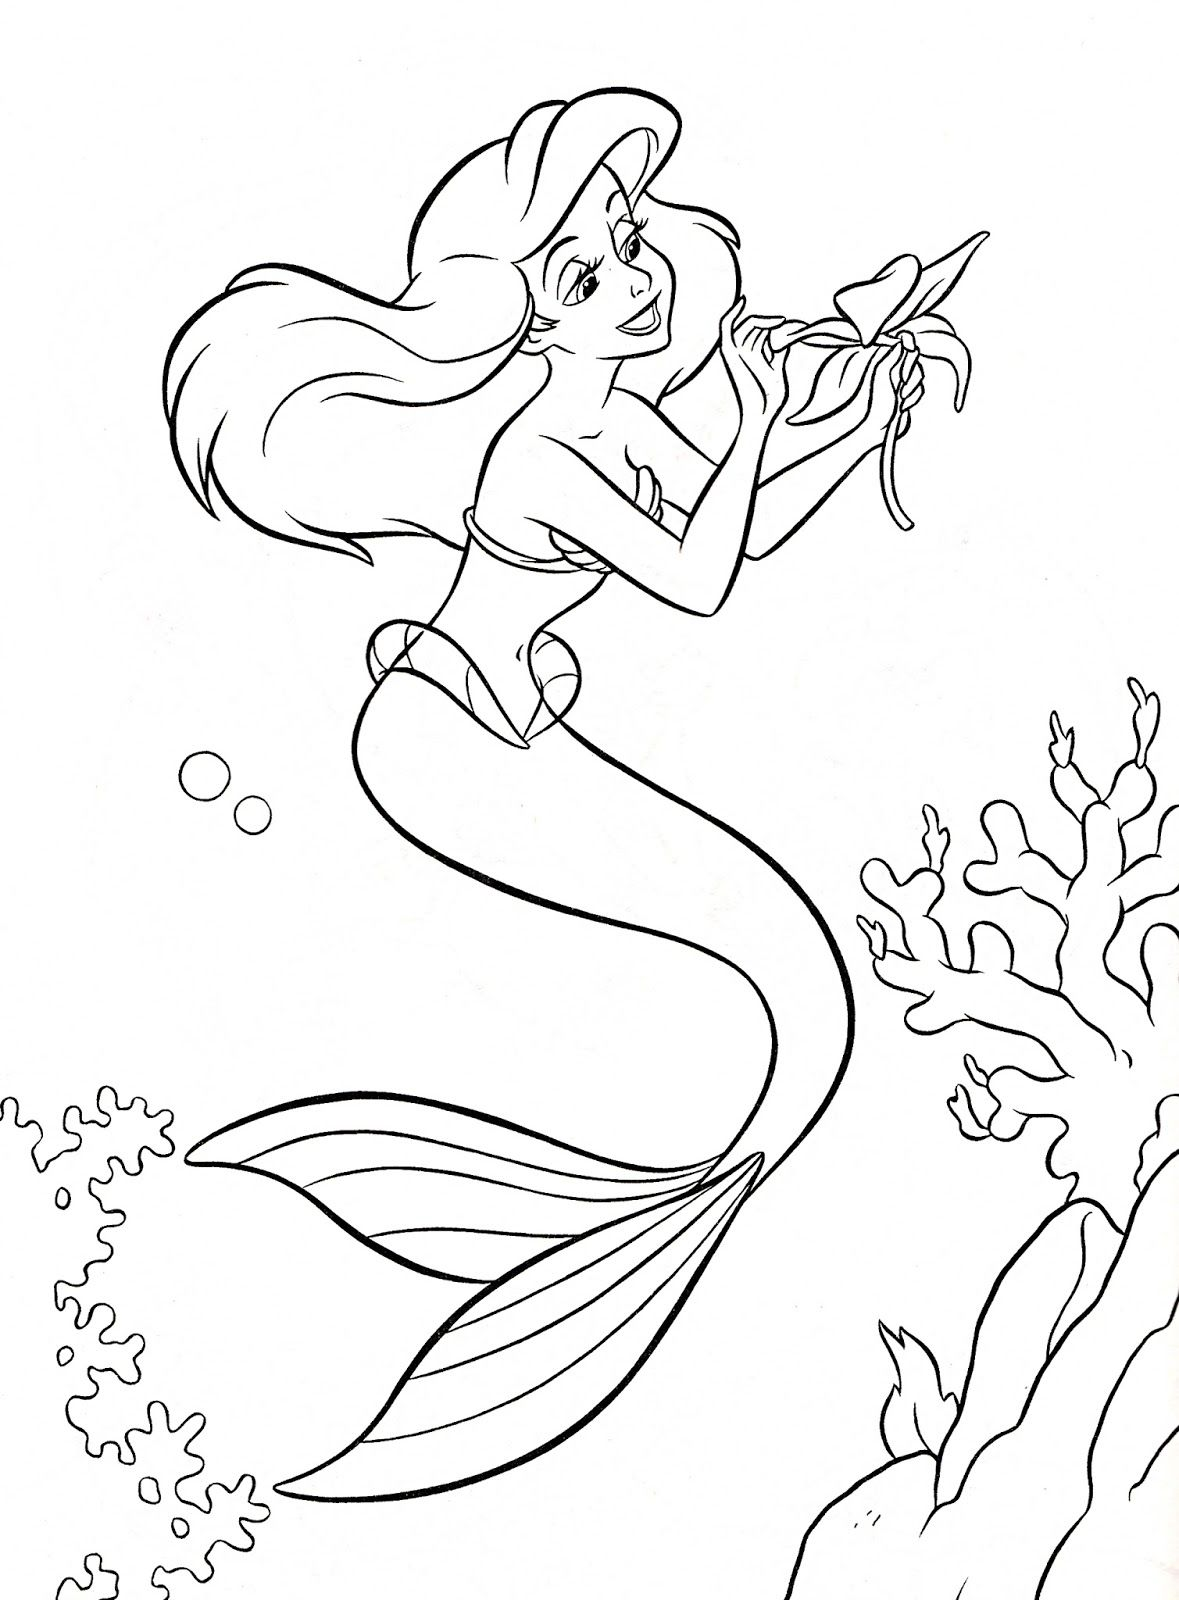 DISNEY COLORING PAGES: THE LITTLE MERMAID DISNEY COLORING PAGE ...